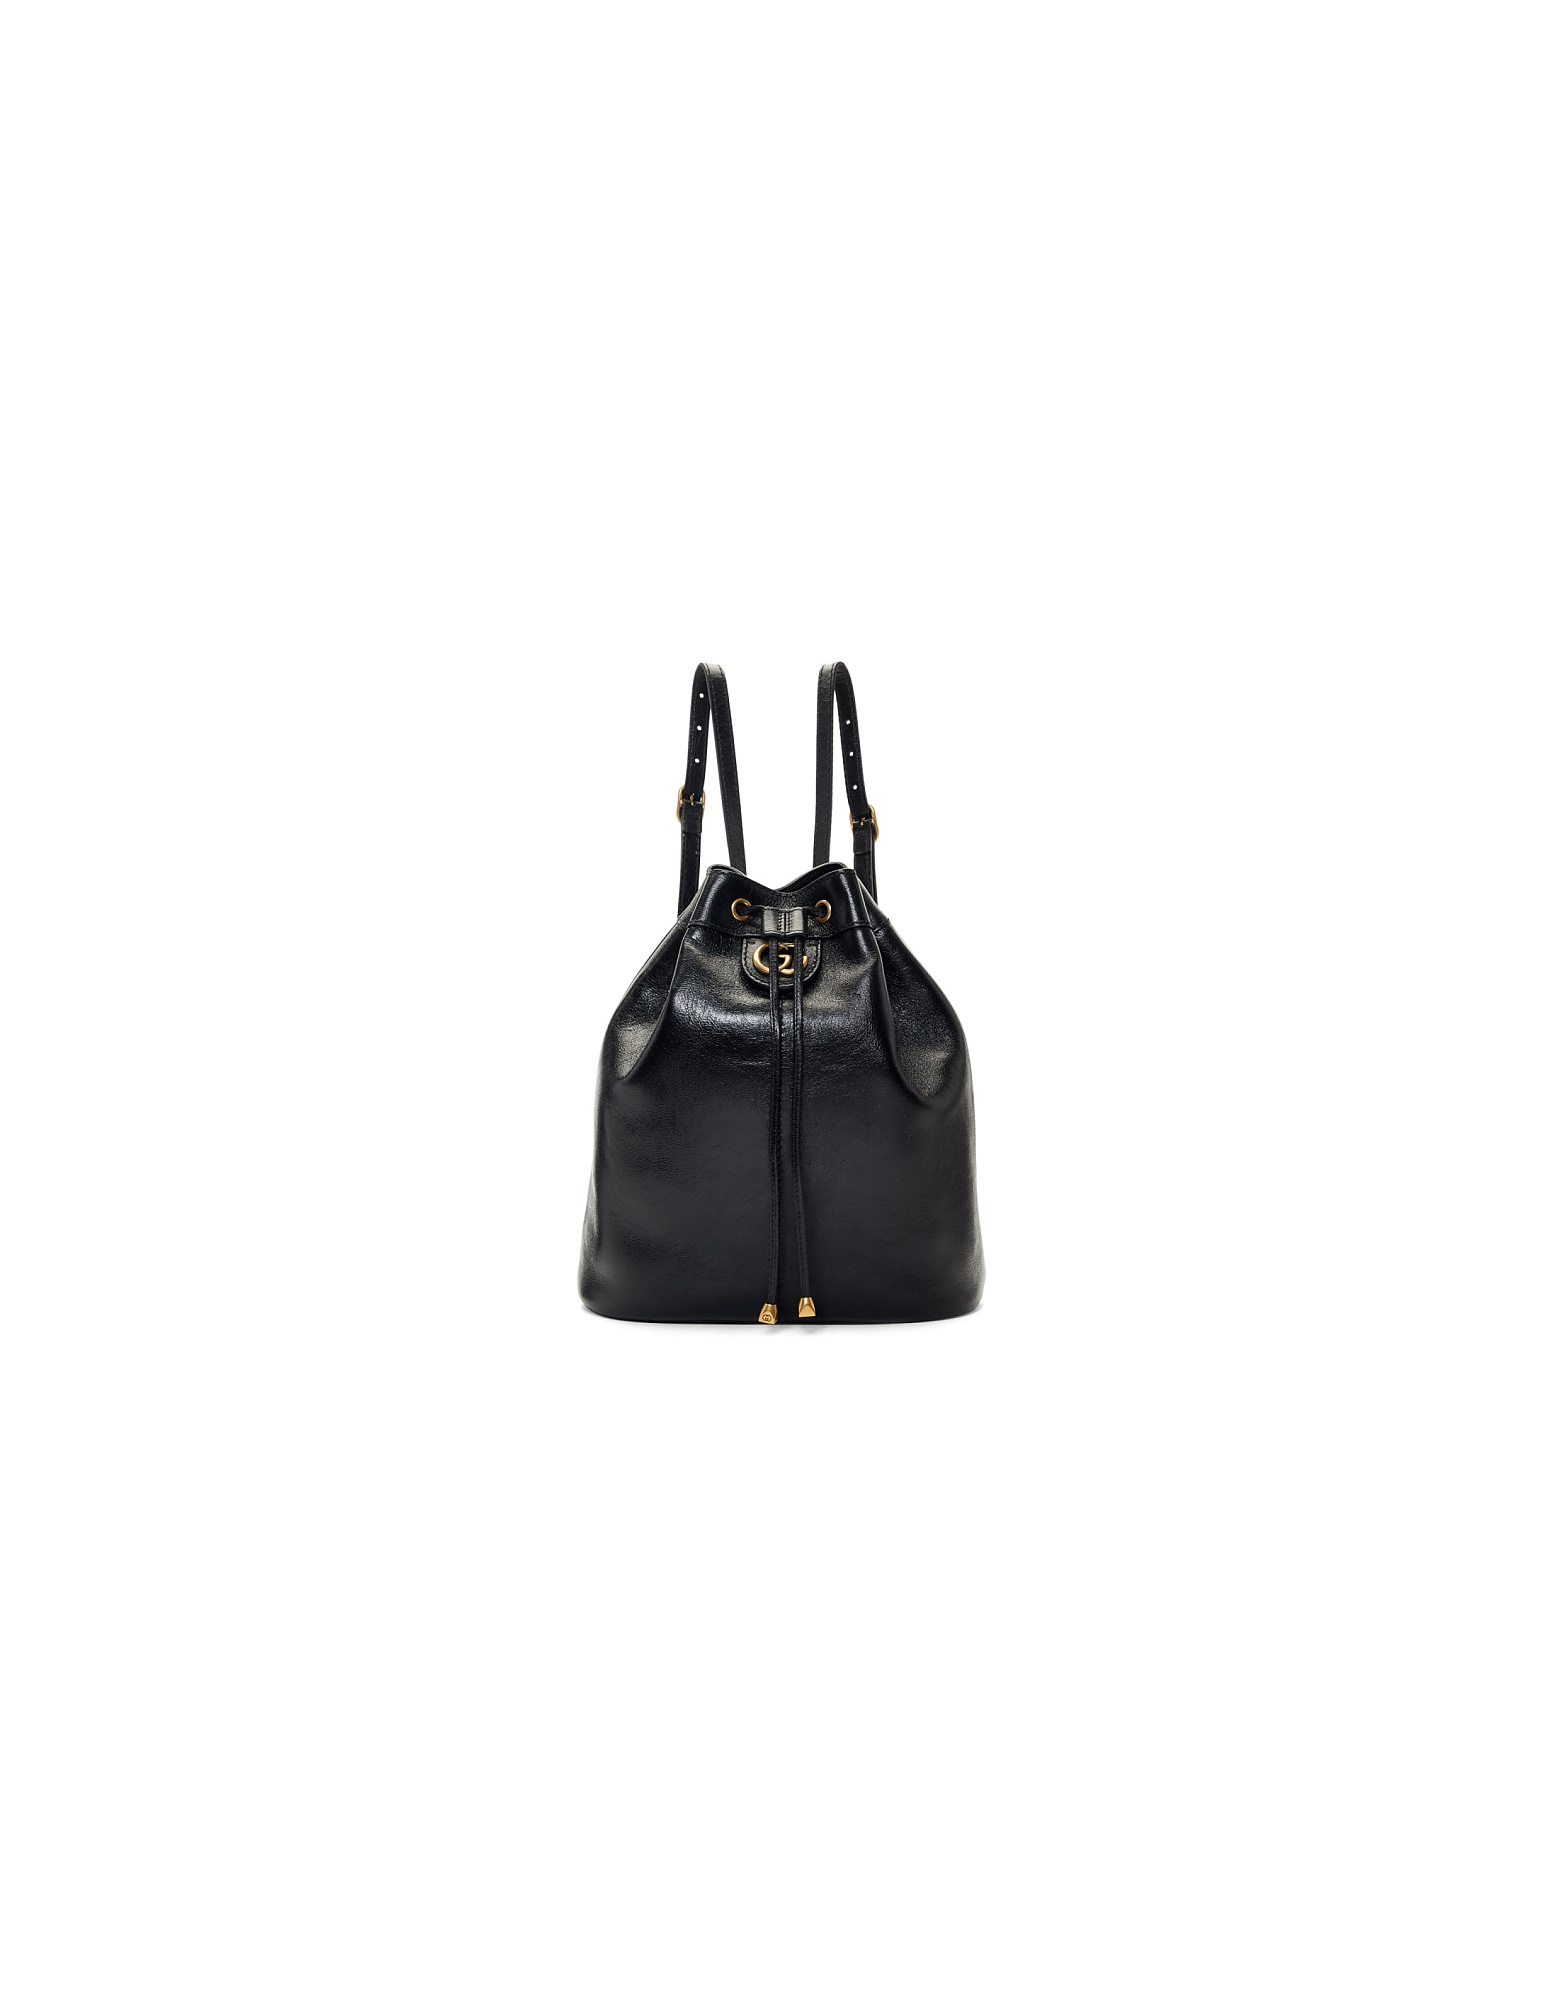 Gucci Designer Handbags, Black Rebelle Bag